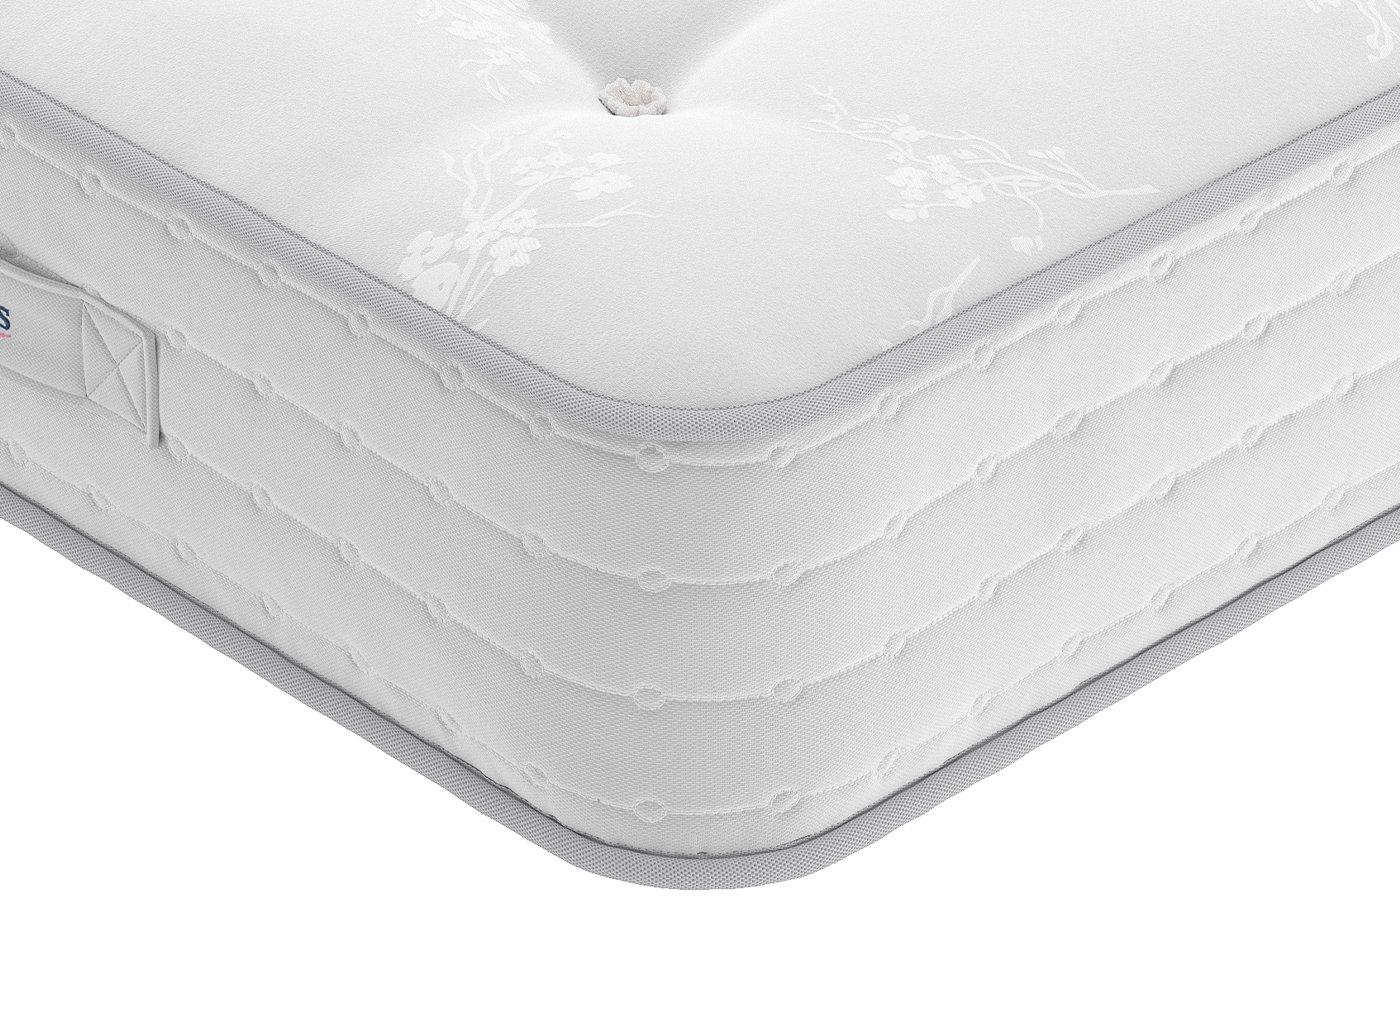 Maitland 1000 Pocket Sprung Mattress - Firm